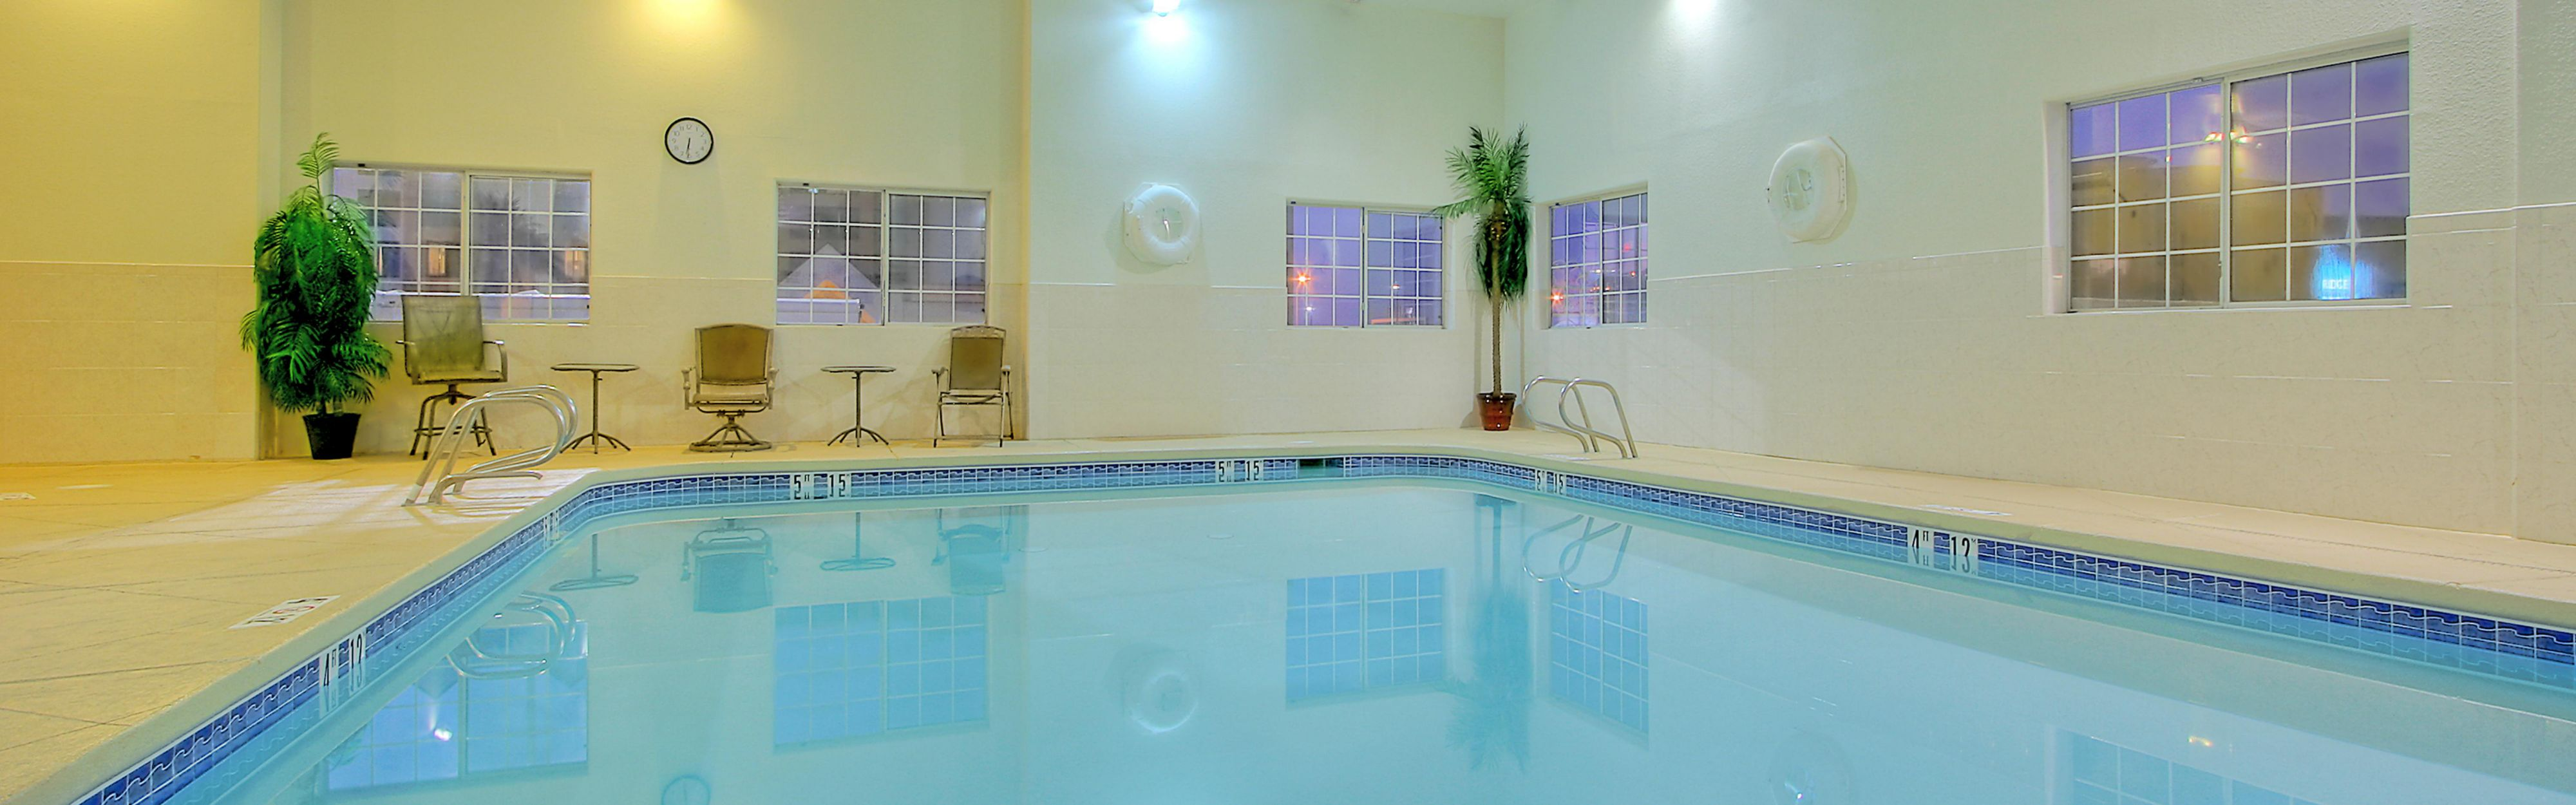 Albuquerque Motels And Hotels